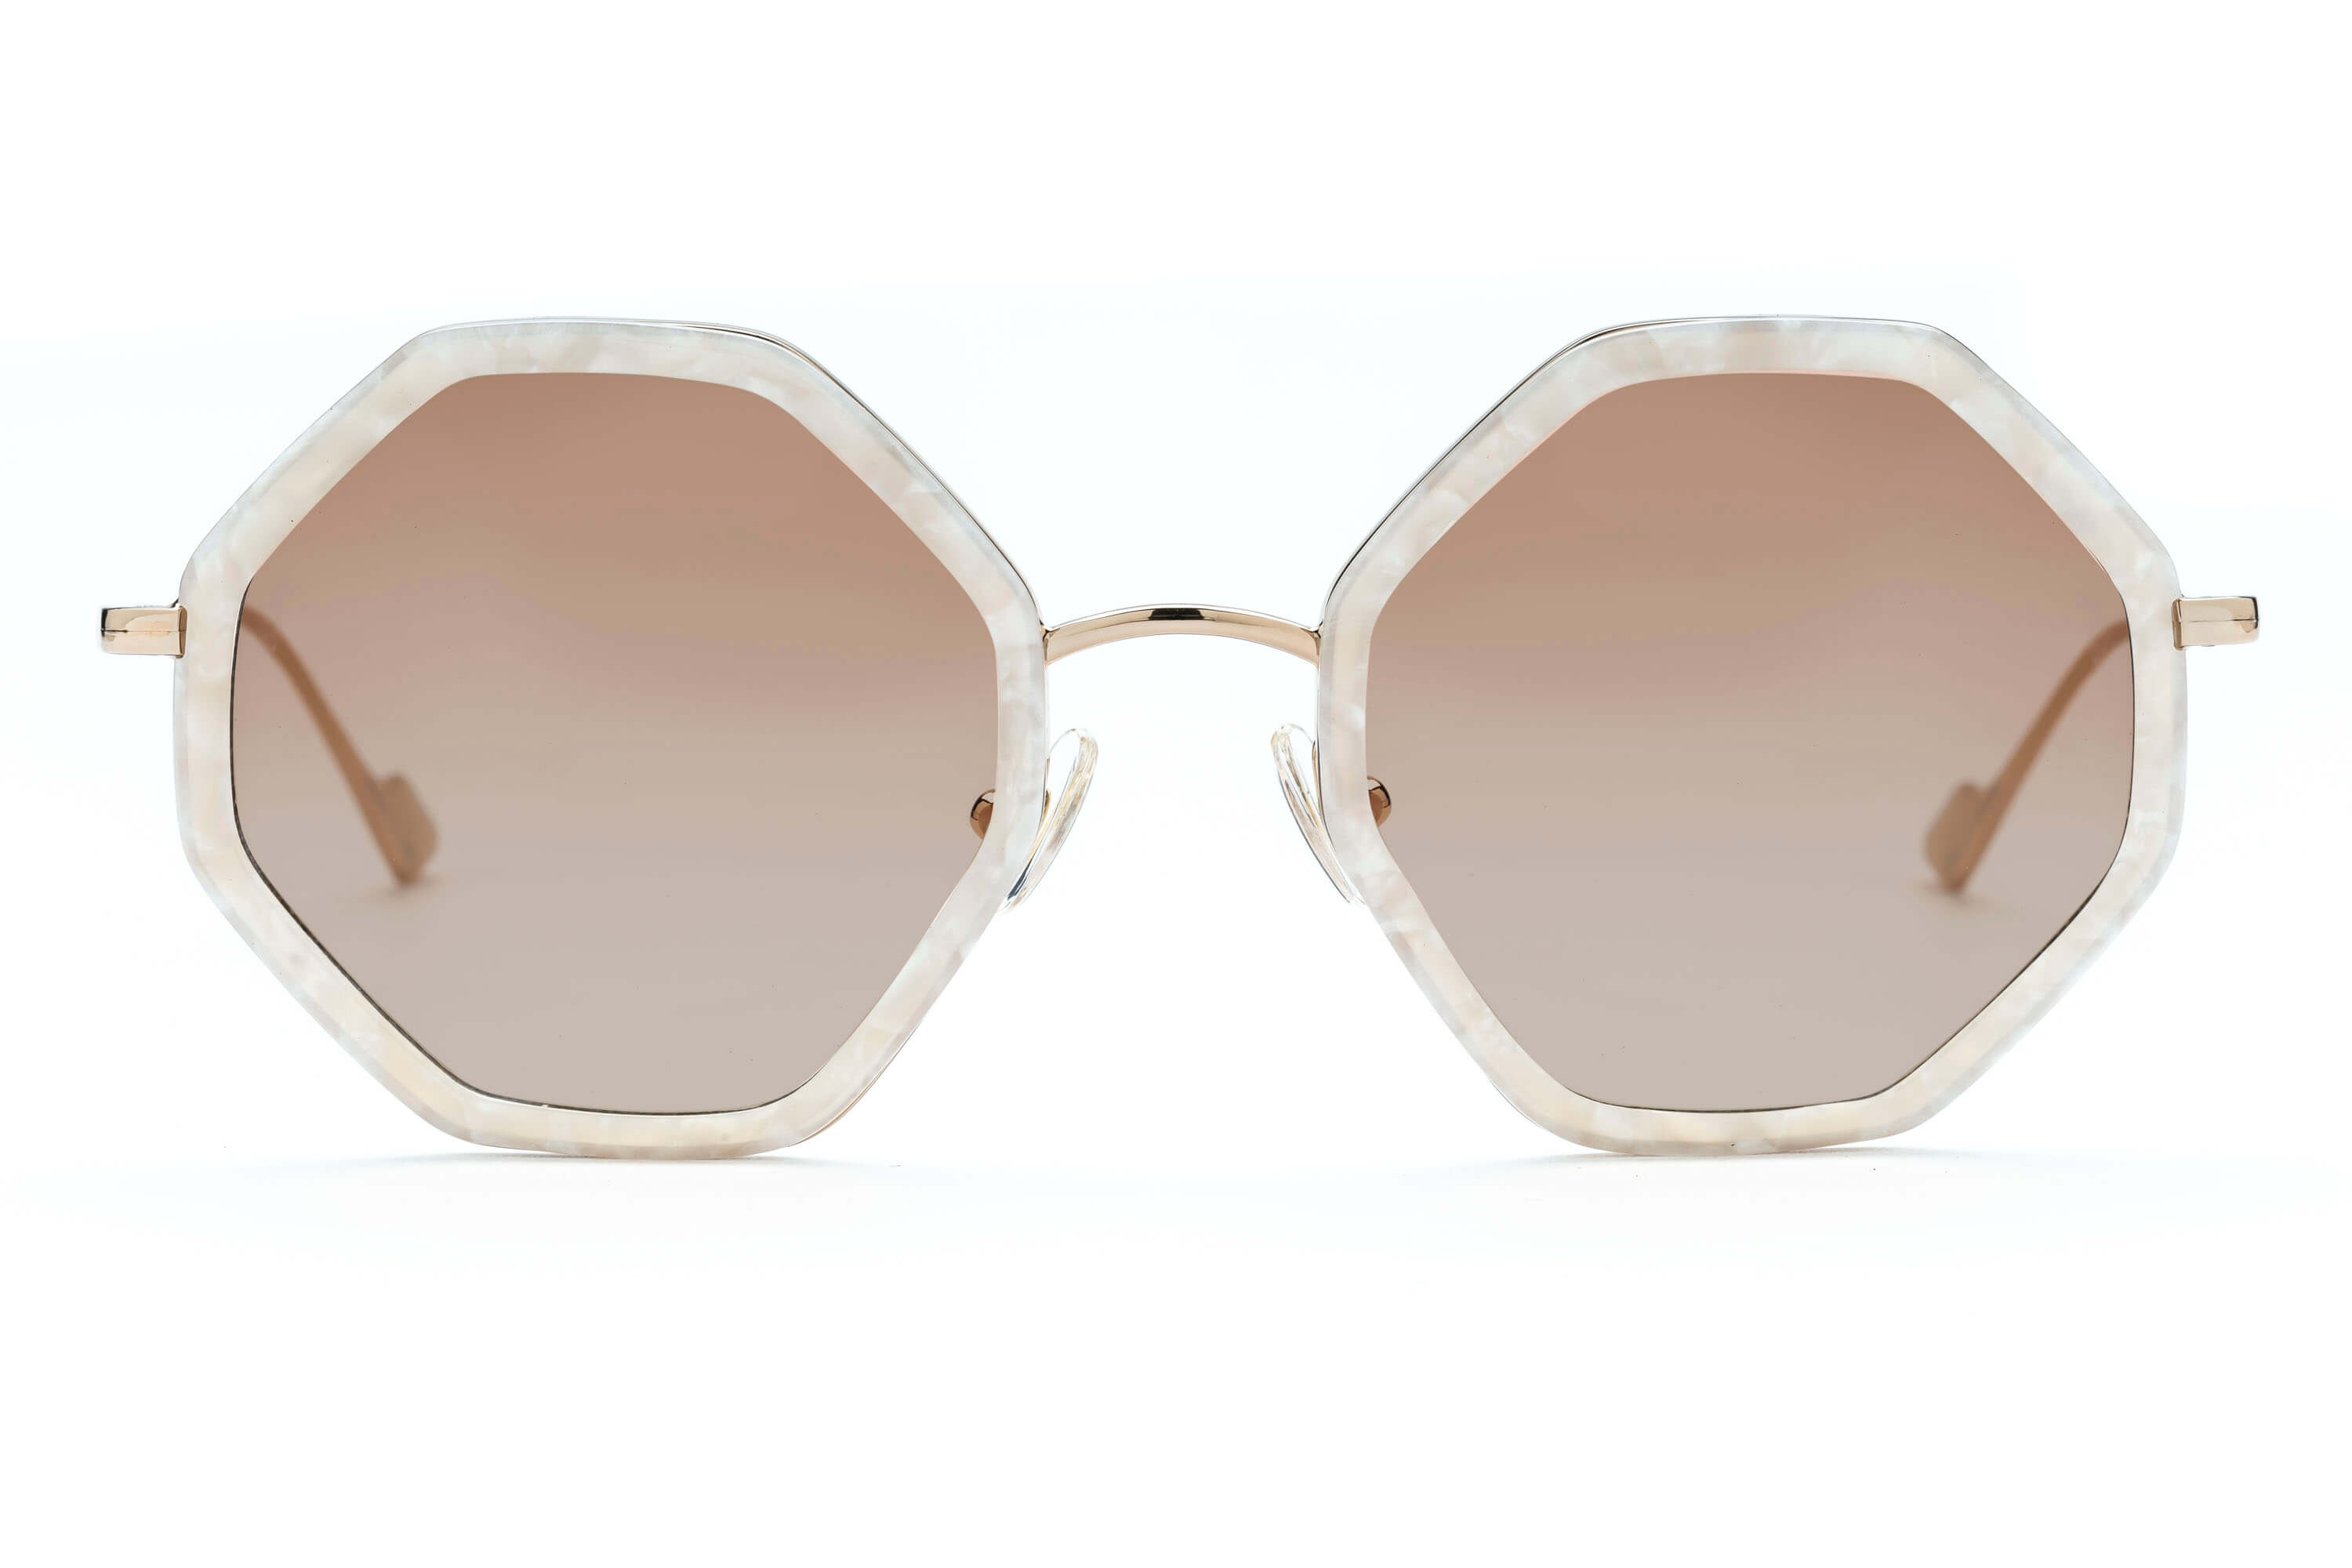 c3a9e8c983 ... Hitomi geometric sunglasses in mother of pearl ...